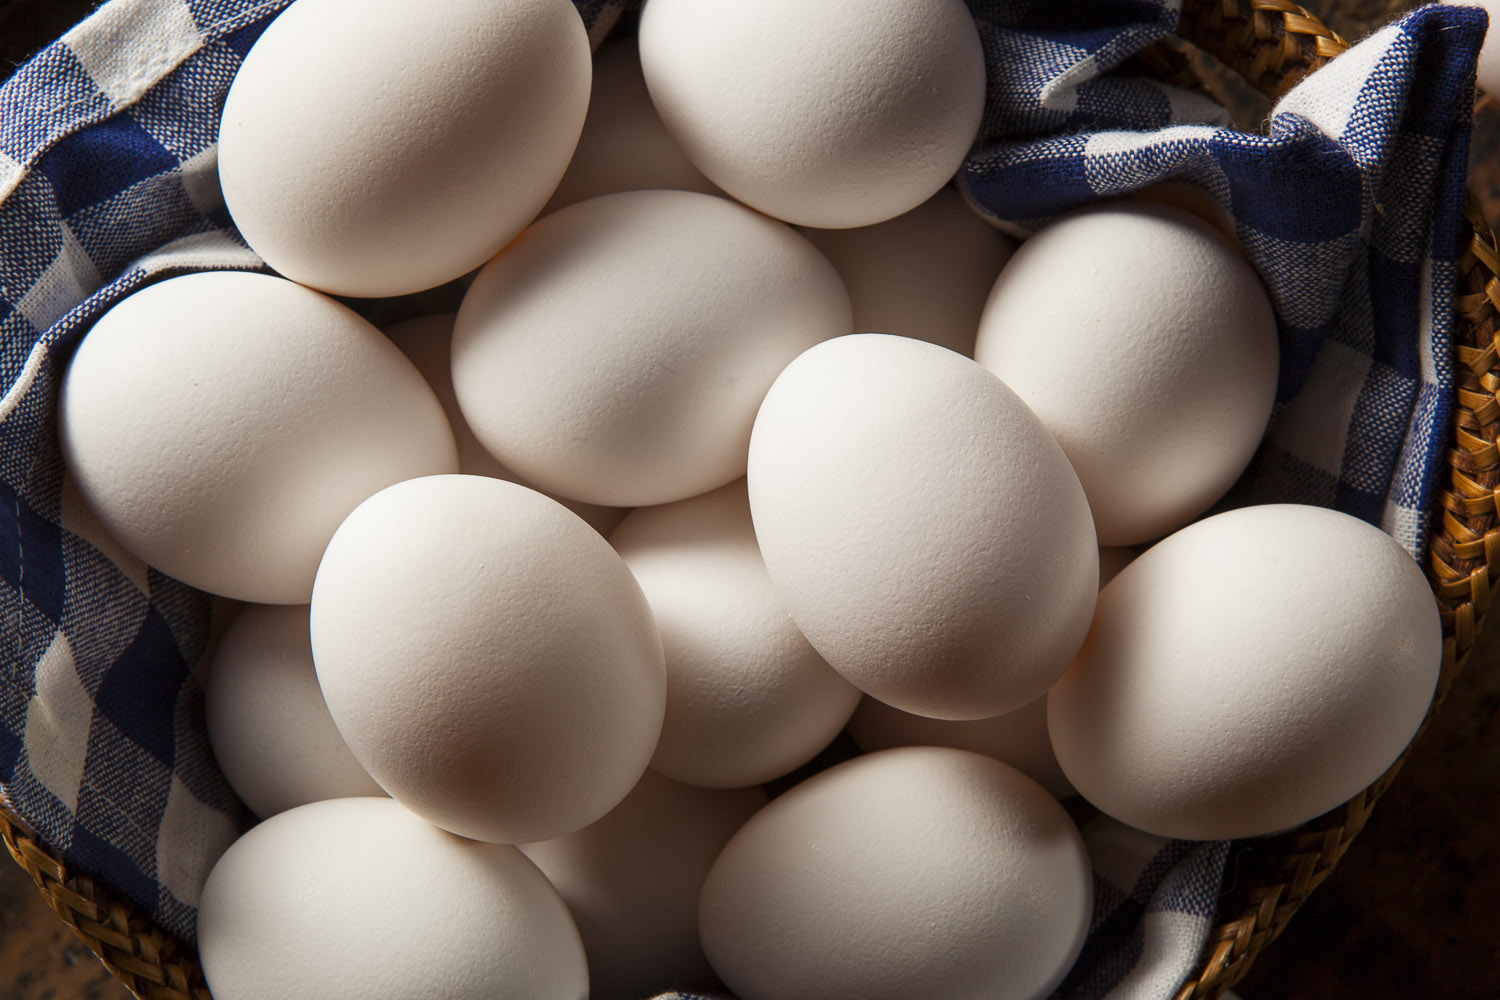 white_eggs_foodshed_allaince